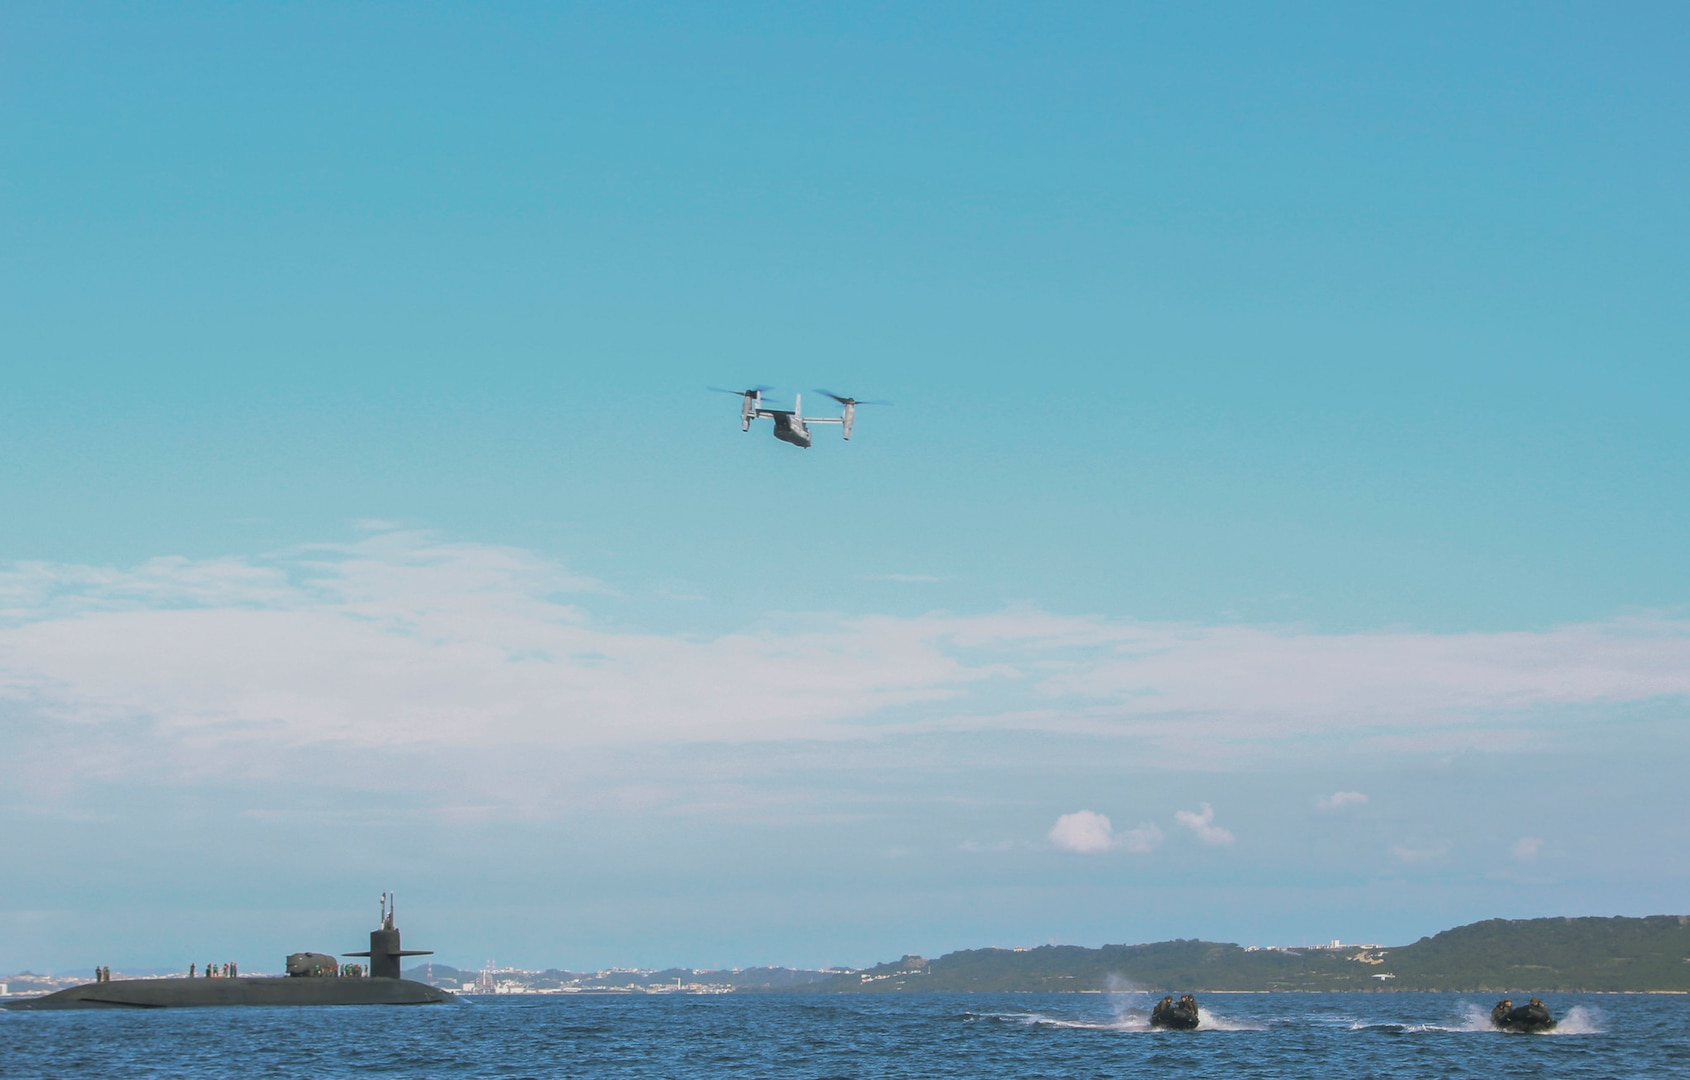 USS Ohio conducts joint operations with Marine Corps element near Okinawa